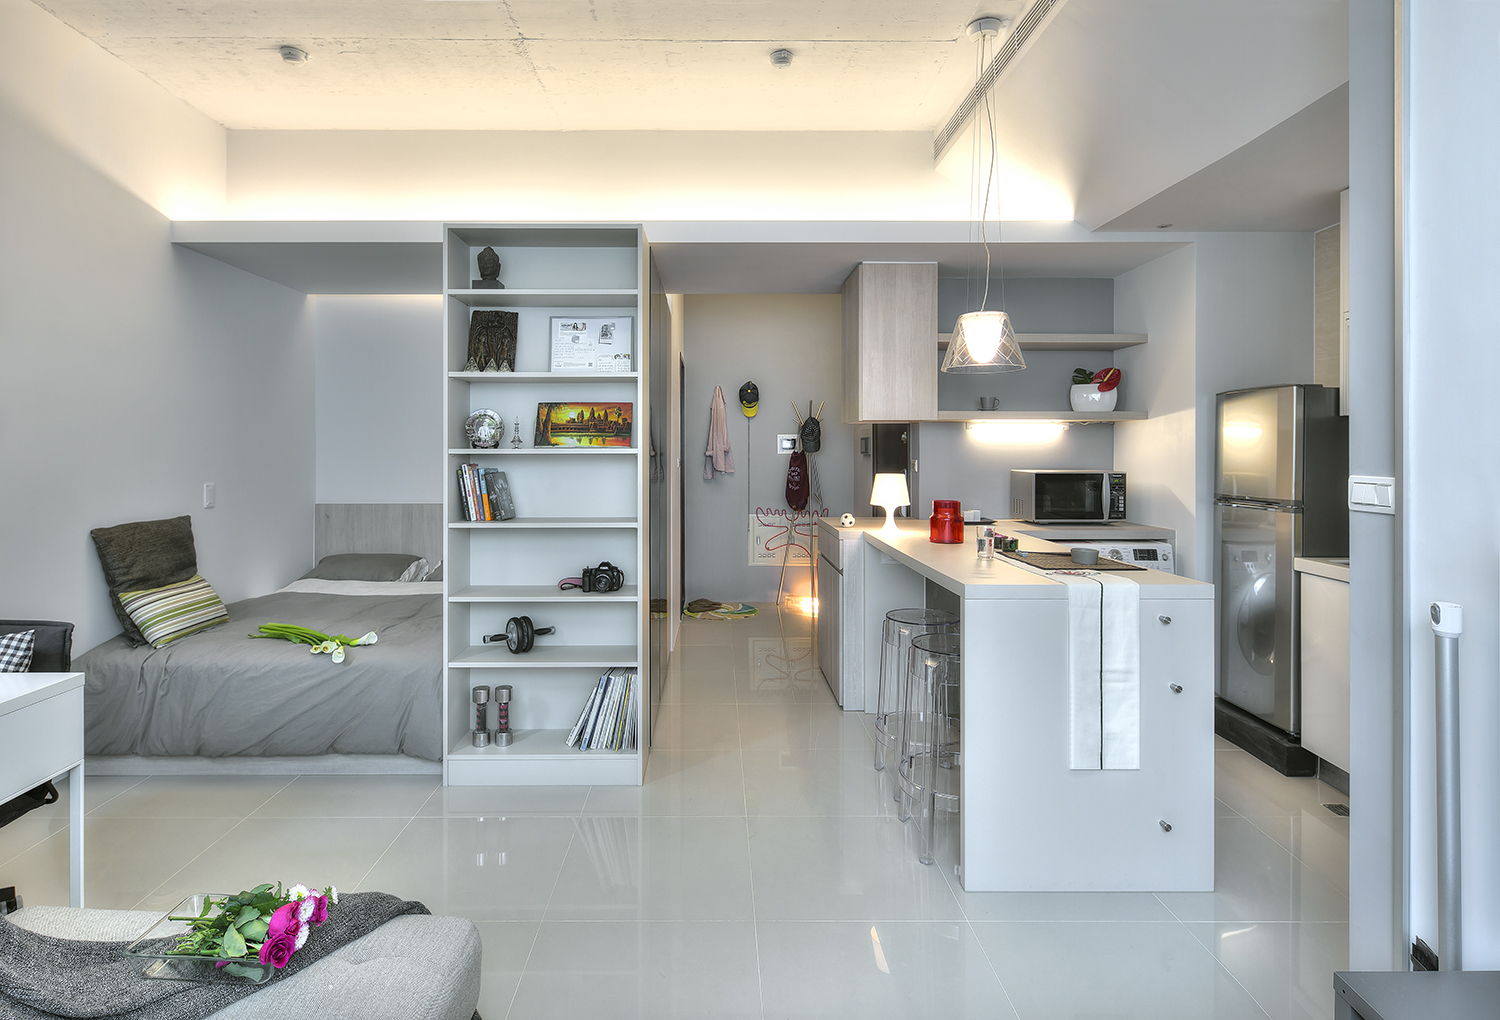 Fullsize Of Small Space Apartment